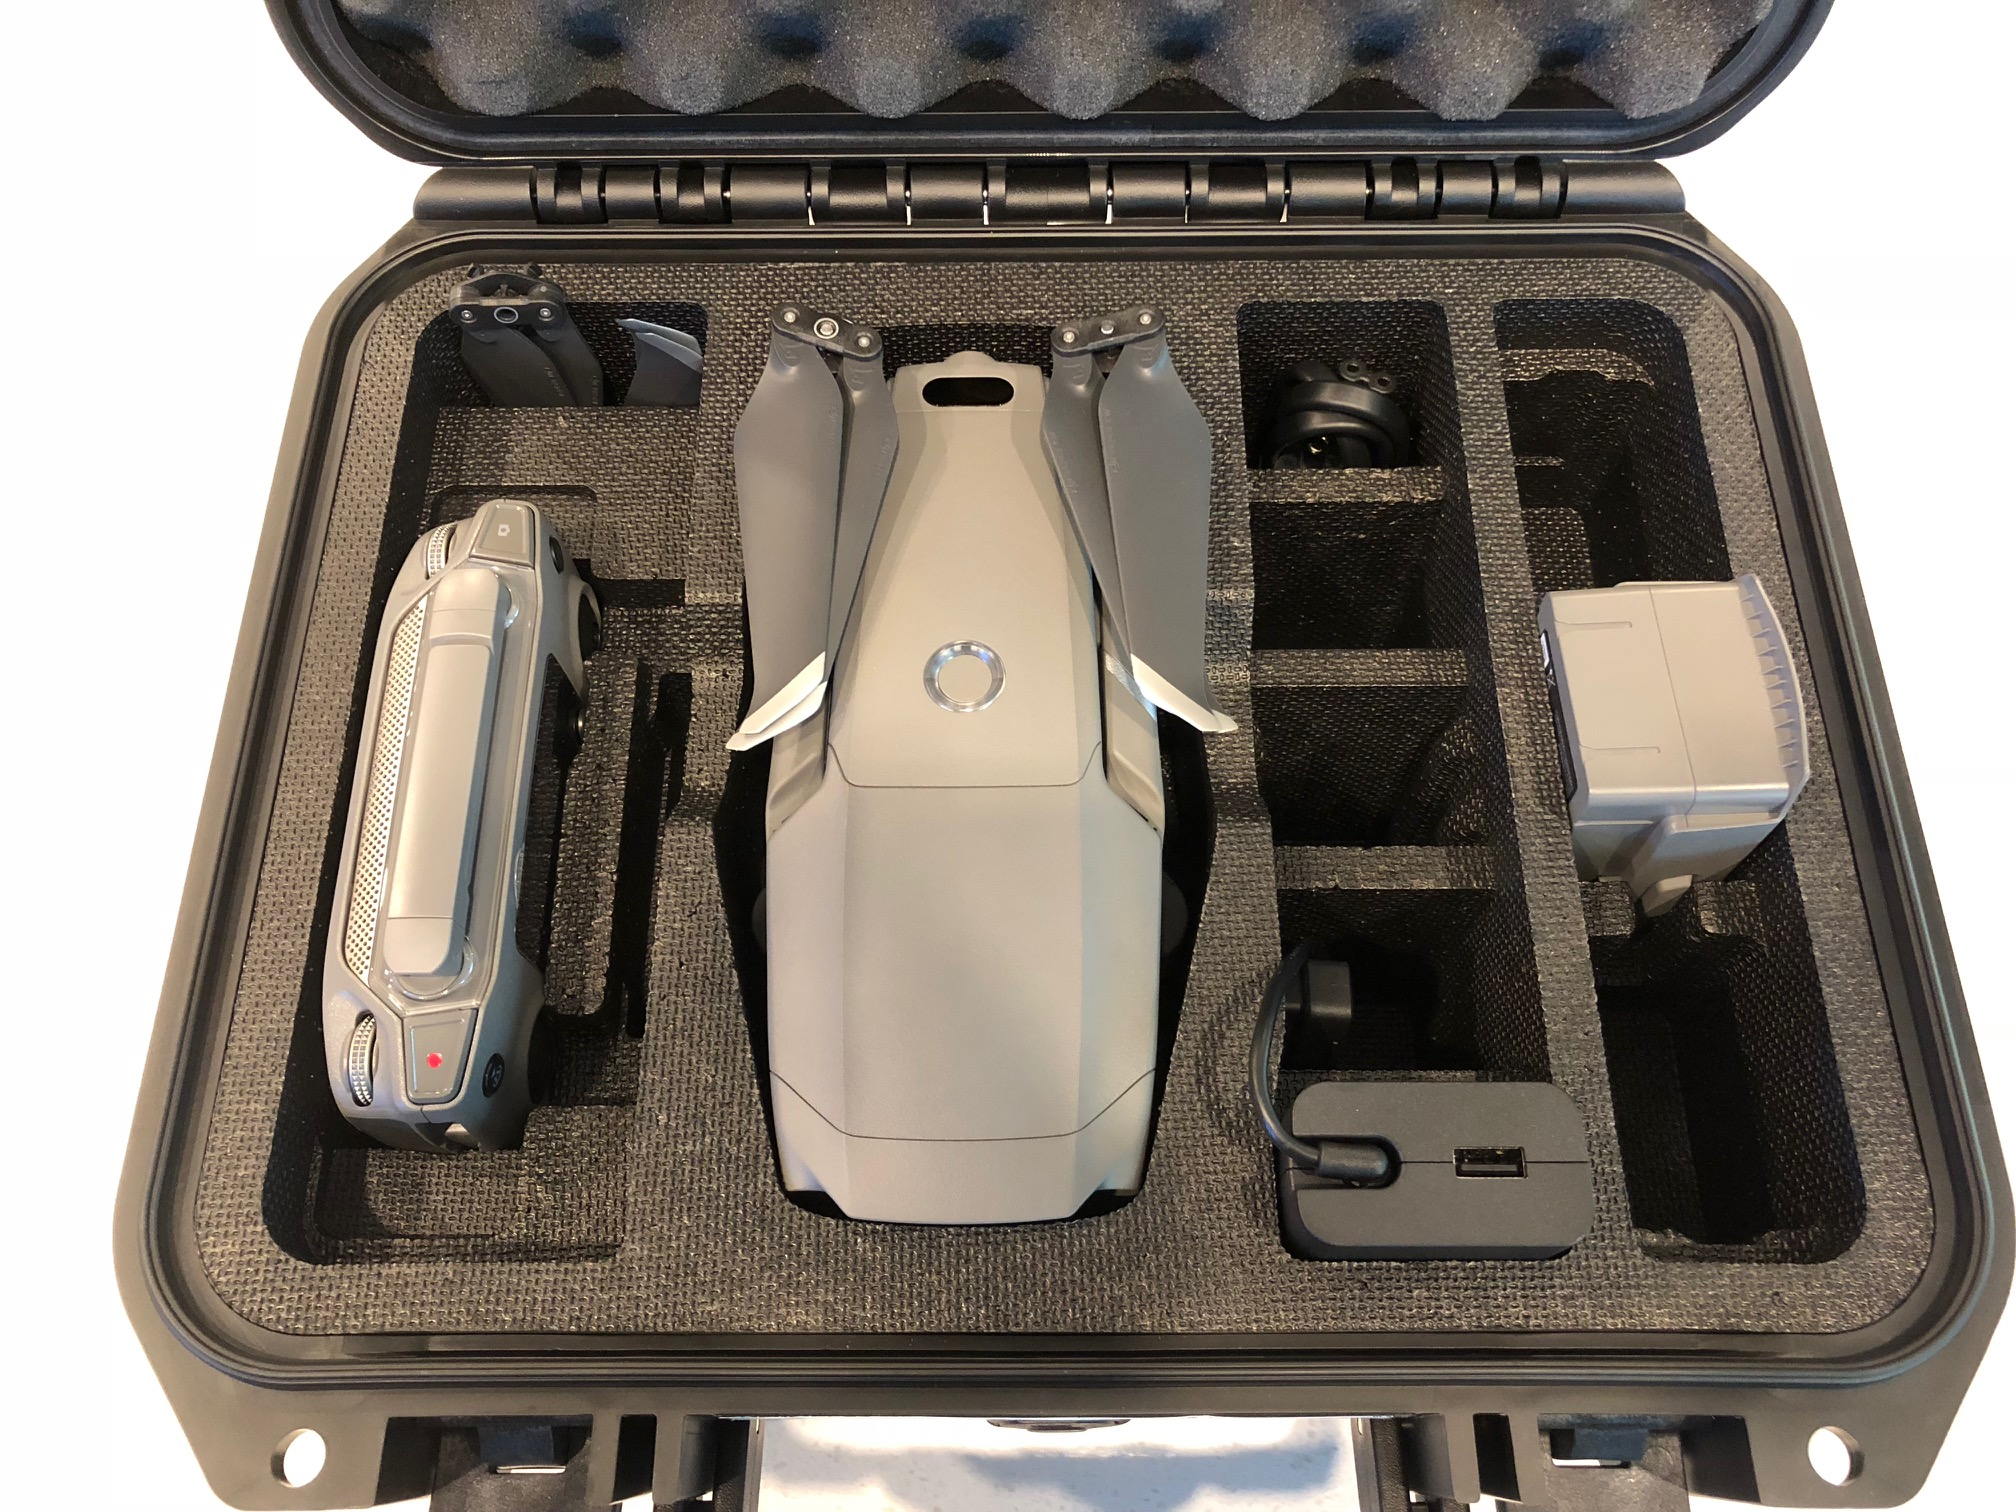 Case with drone inside.